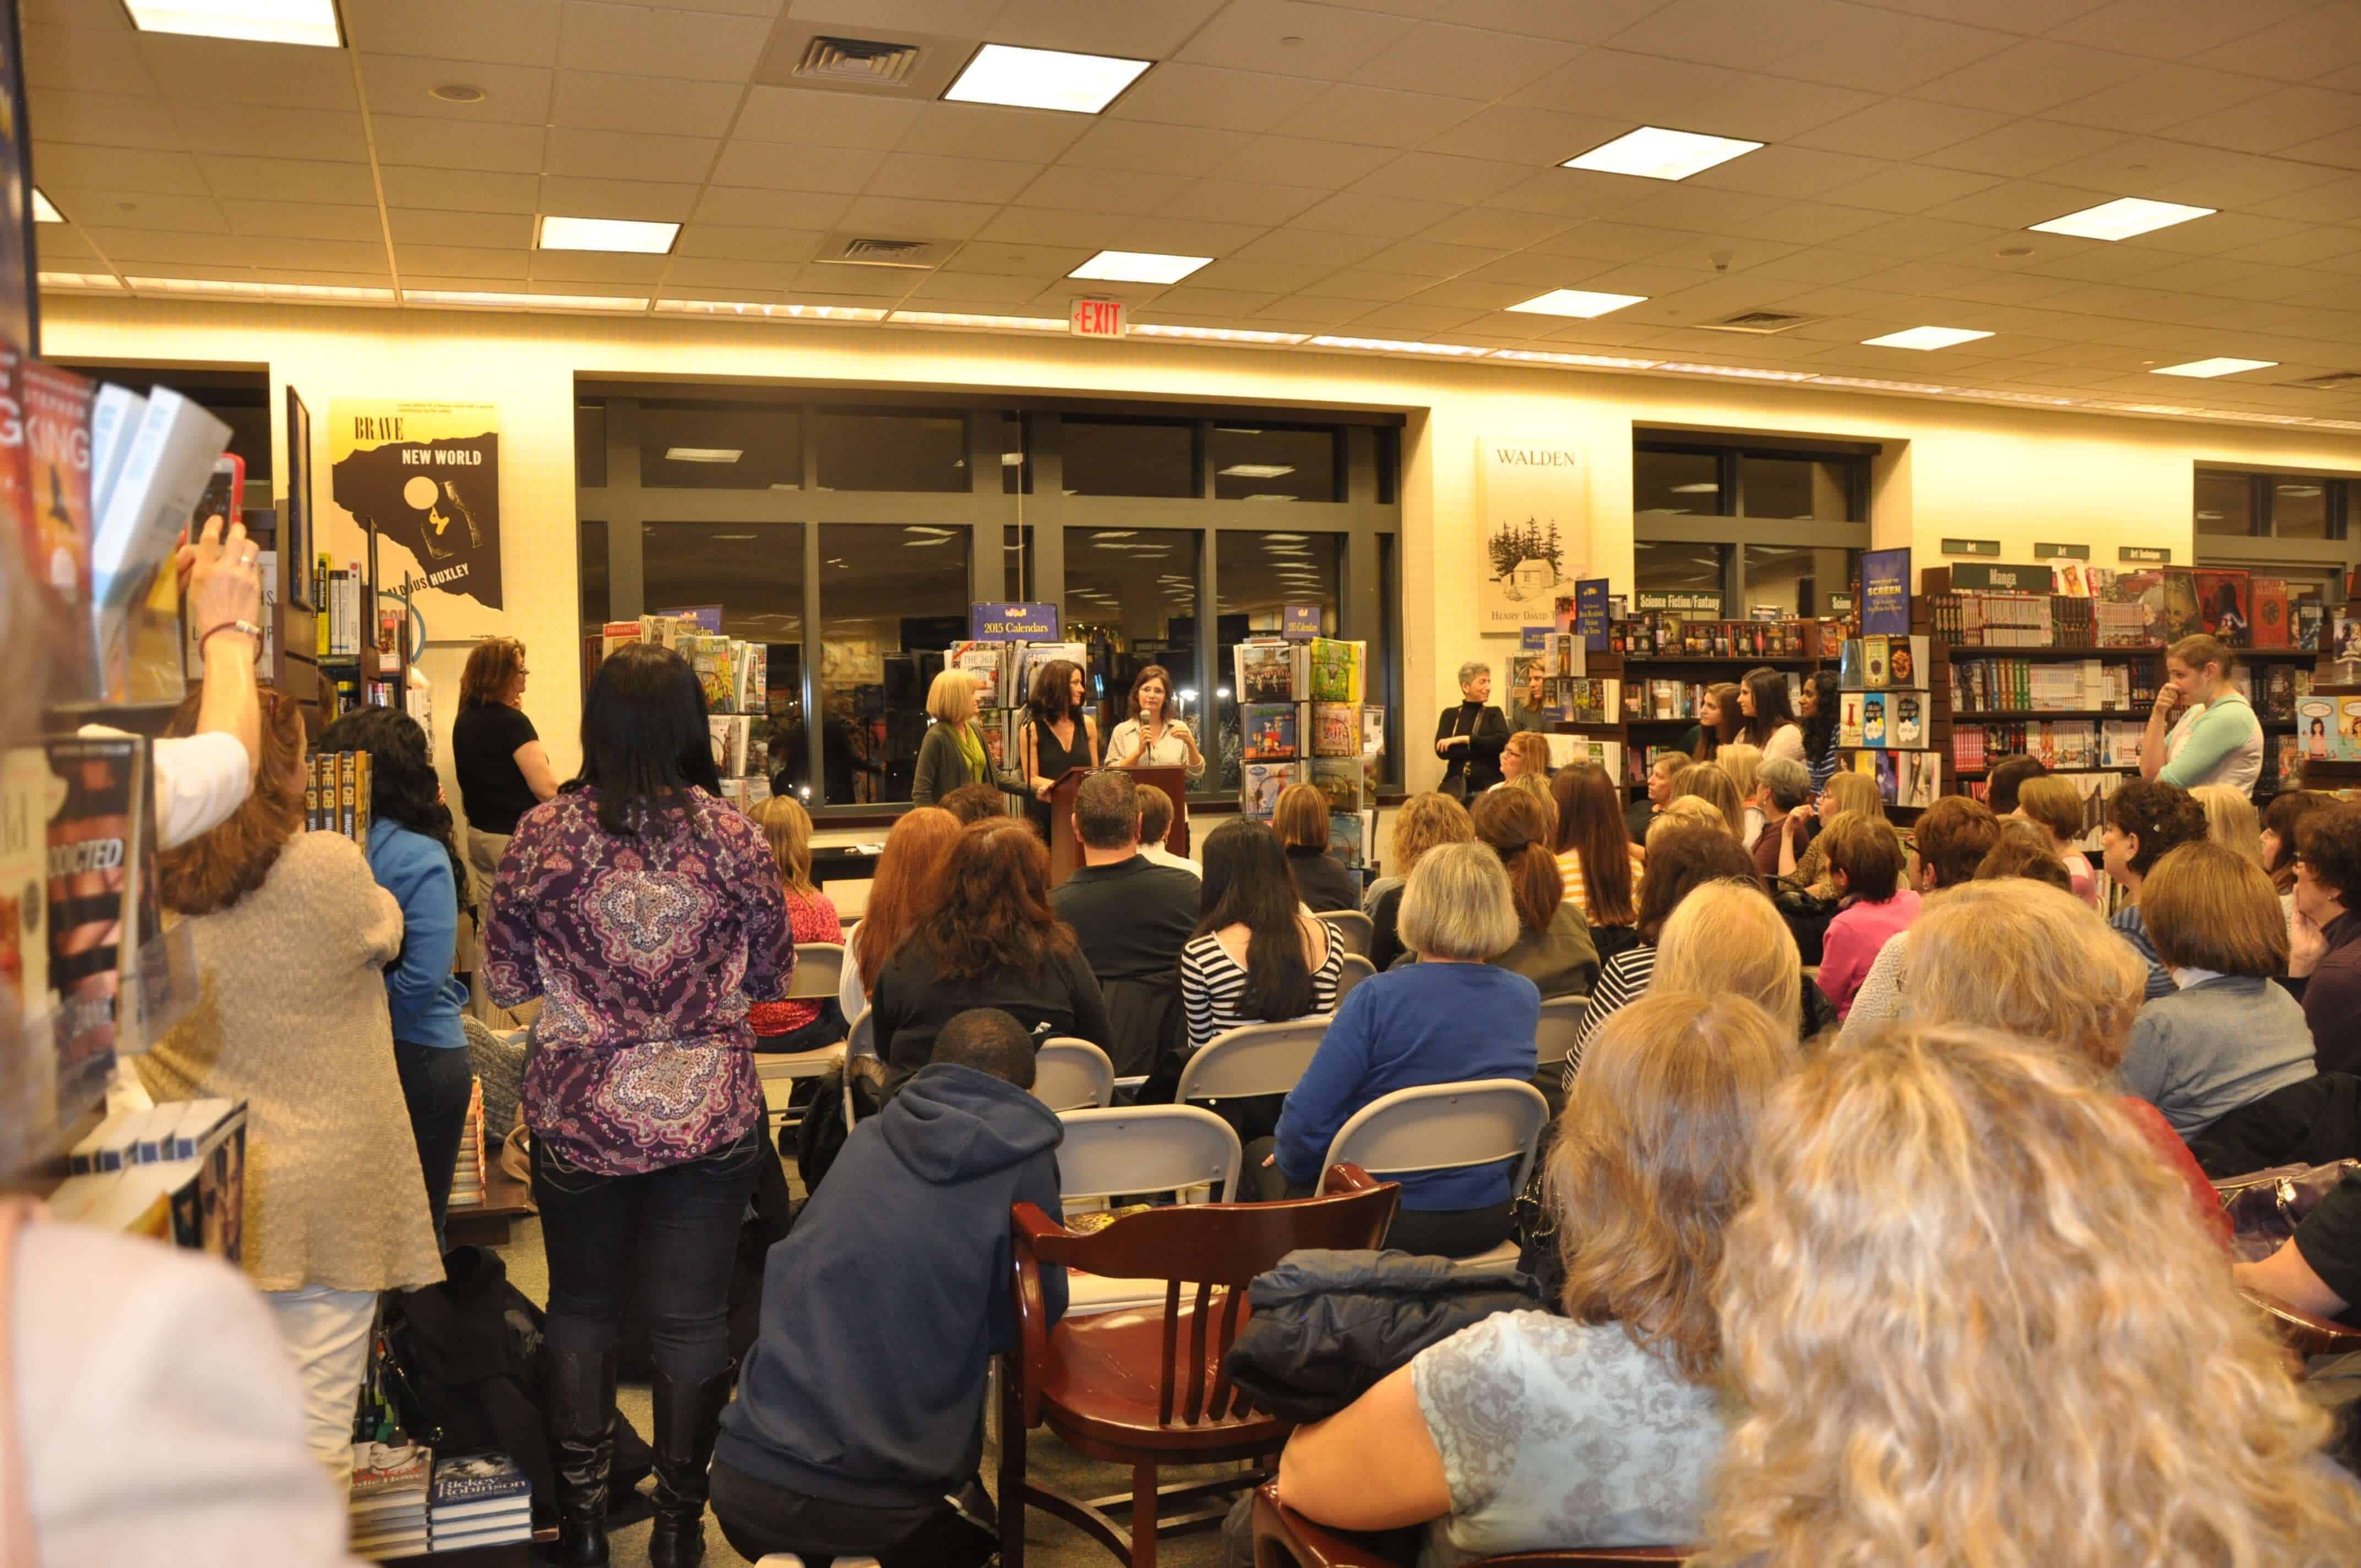 B&N back crowd shot